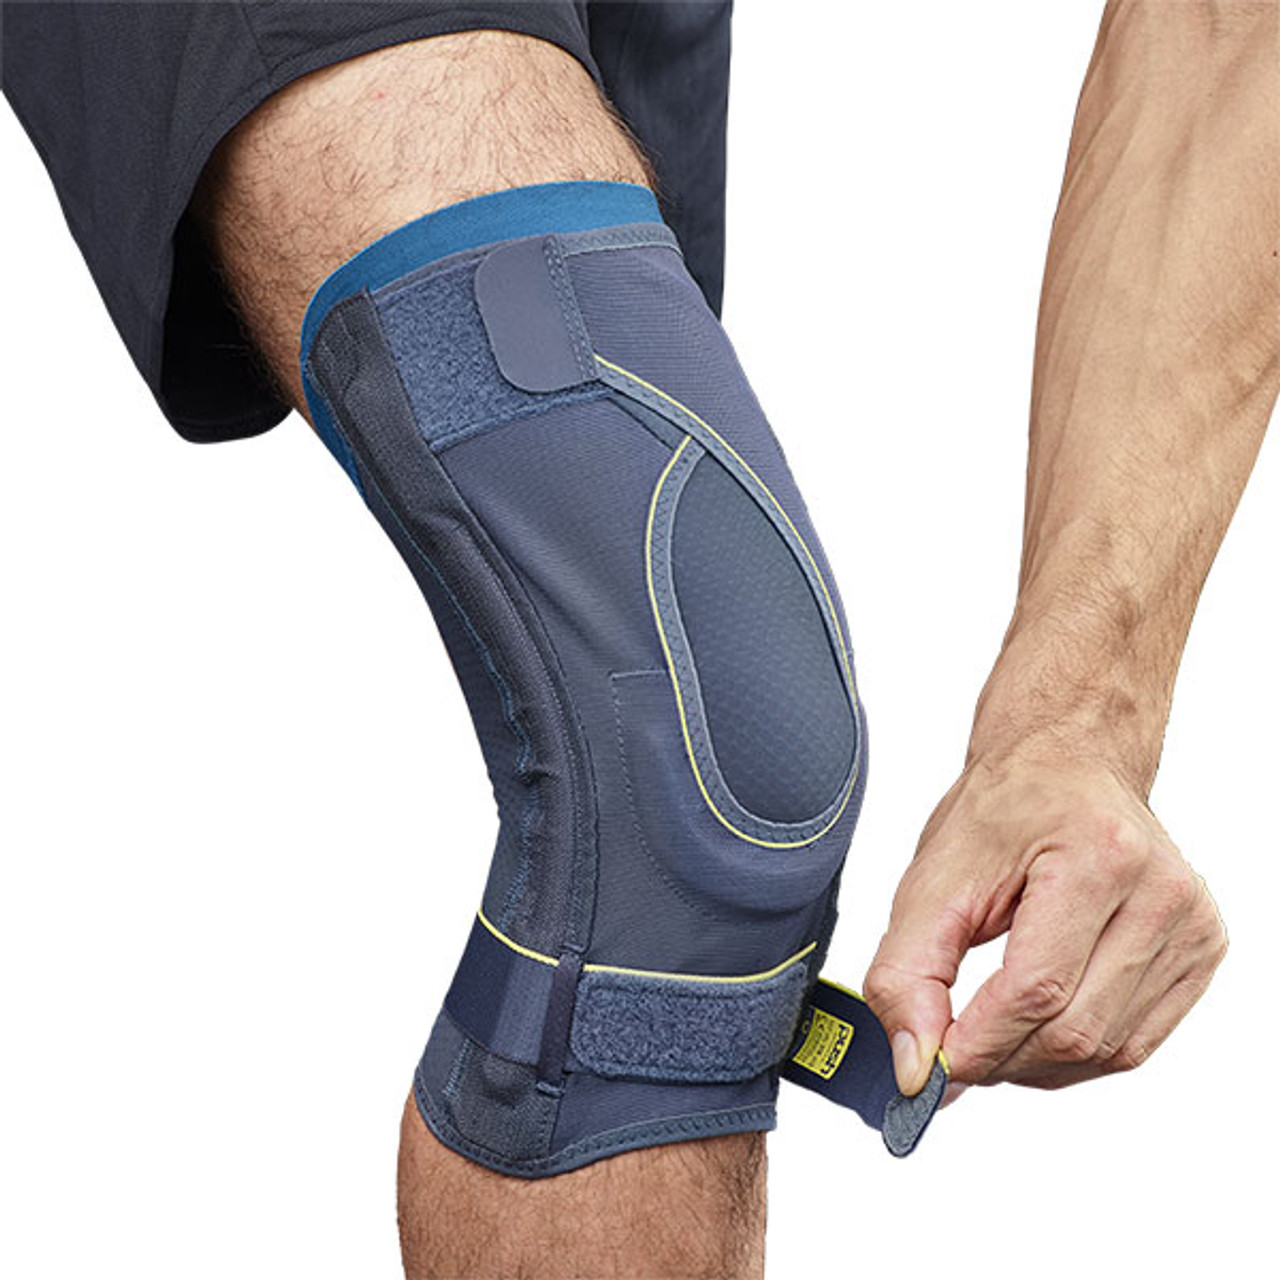 Push Sports Medical Knee Brace with non-axial leaf springs